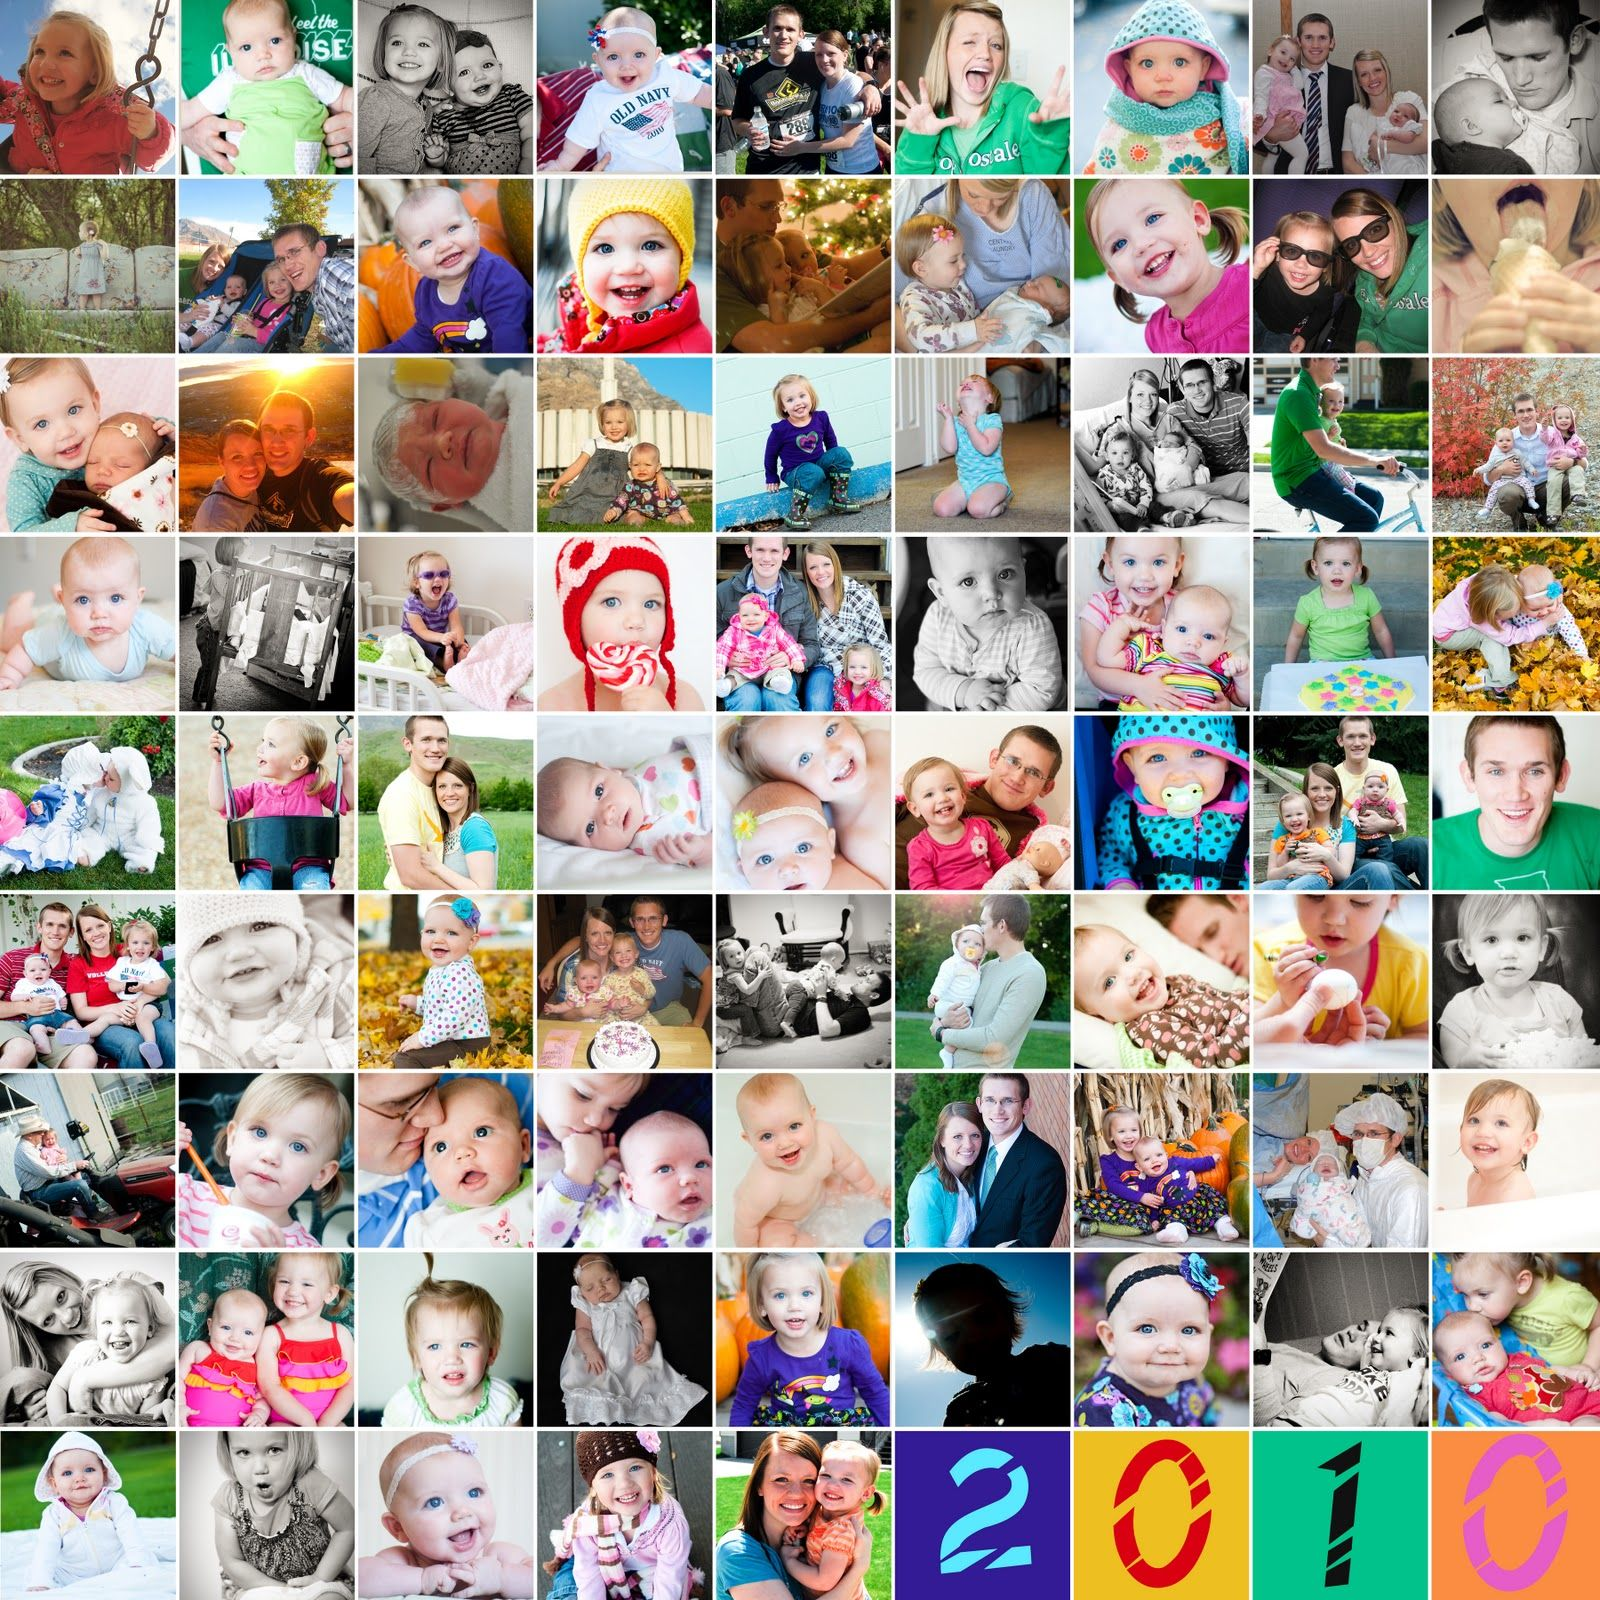 Collage Style Ps Template For This 81 Space 12x12 Collage Picture Collage Wall Picture Collage Photo Collage